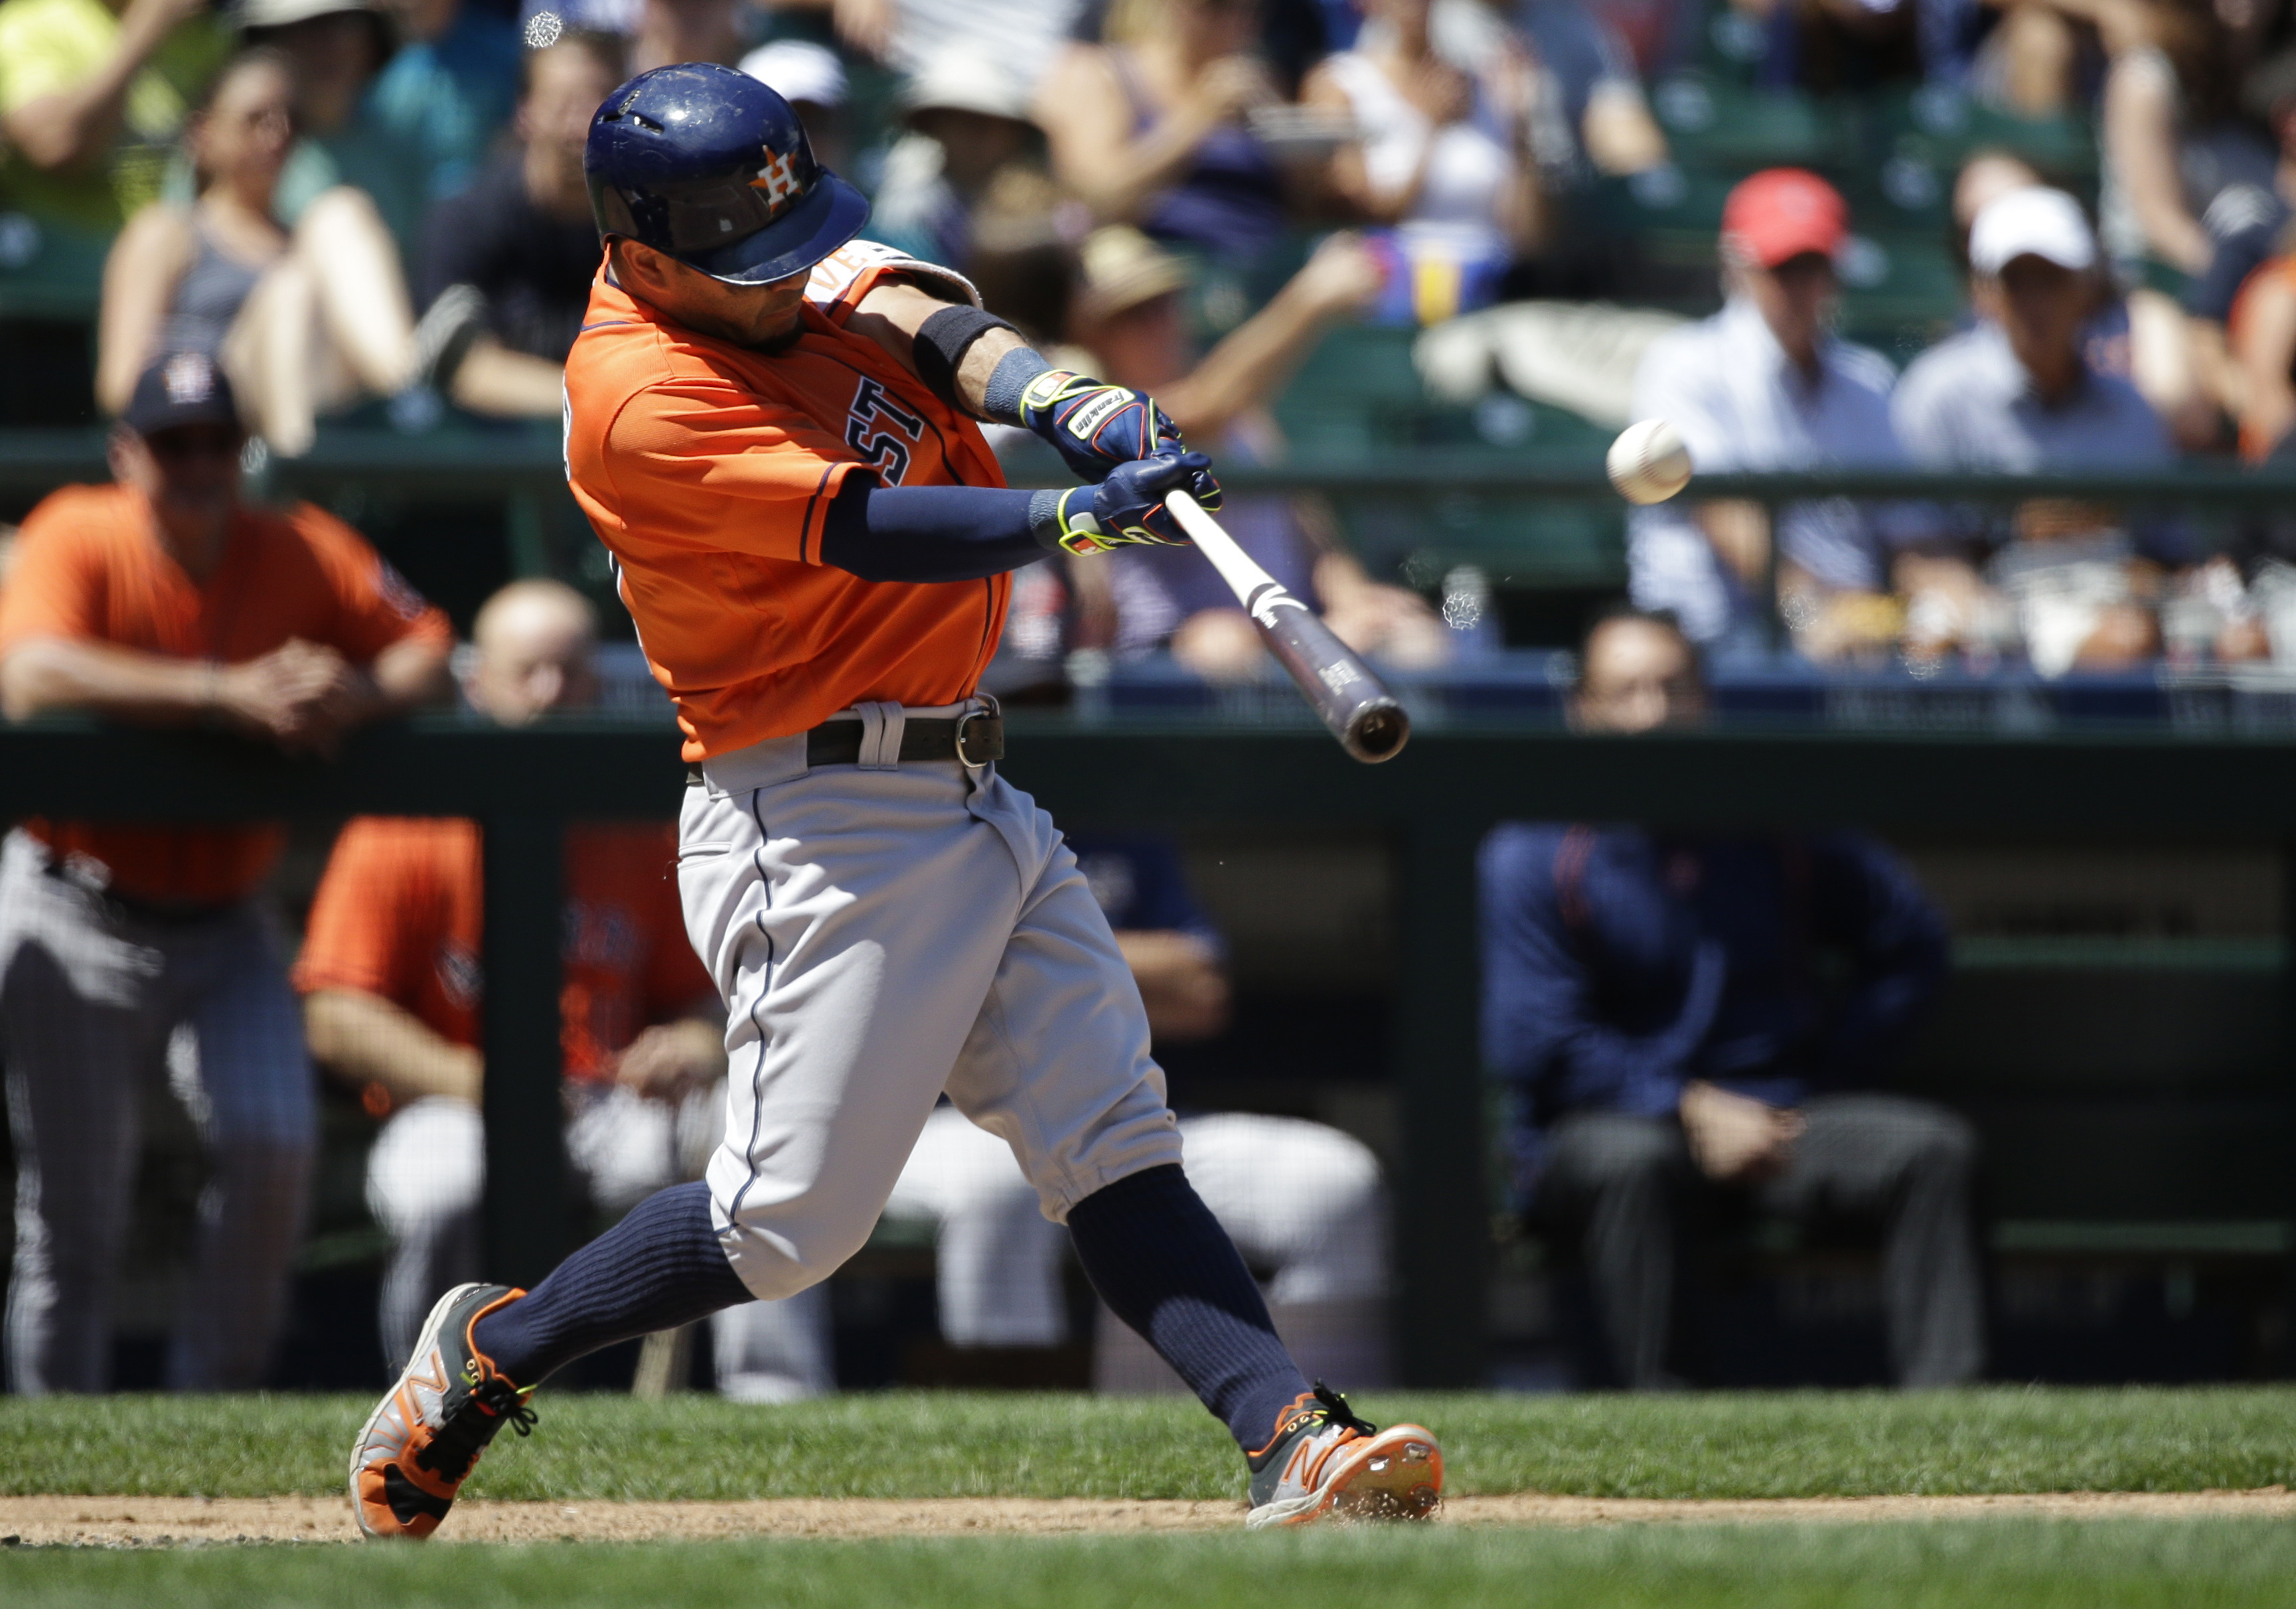 Houston Astros' Jose Altuve hits a two-run home run in the third inning of a baseball game against the Seattle Mariners, Sunday, July 17, 2016, in Seattle. Astros' Marwin Gonzalez also scored on the play. (AP Photo/Ted S. Warren)